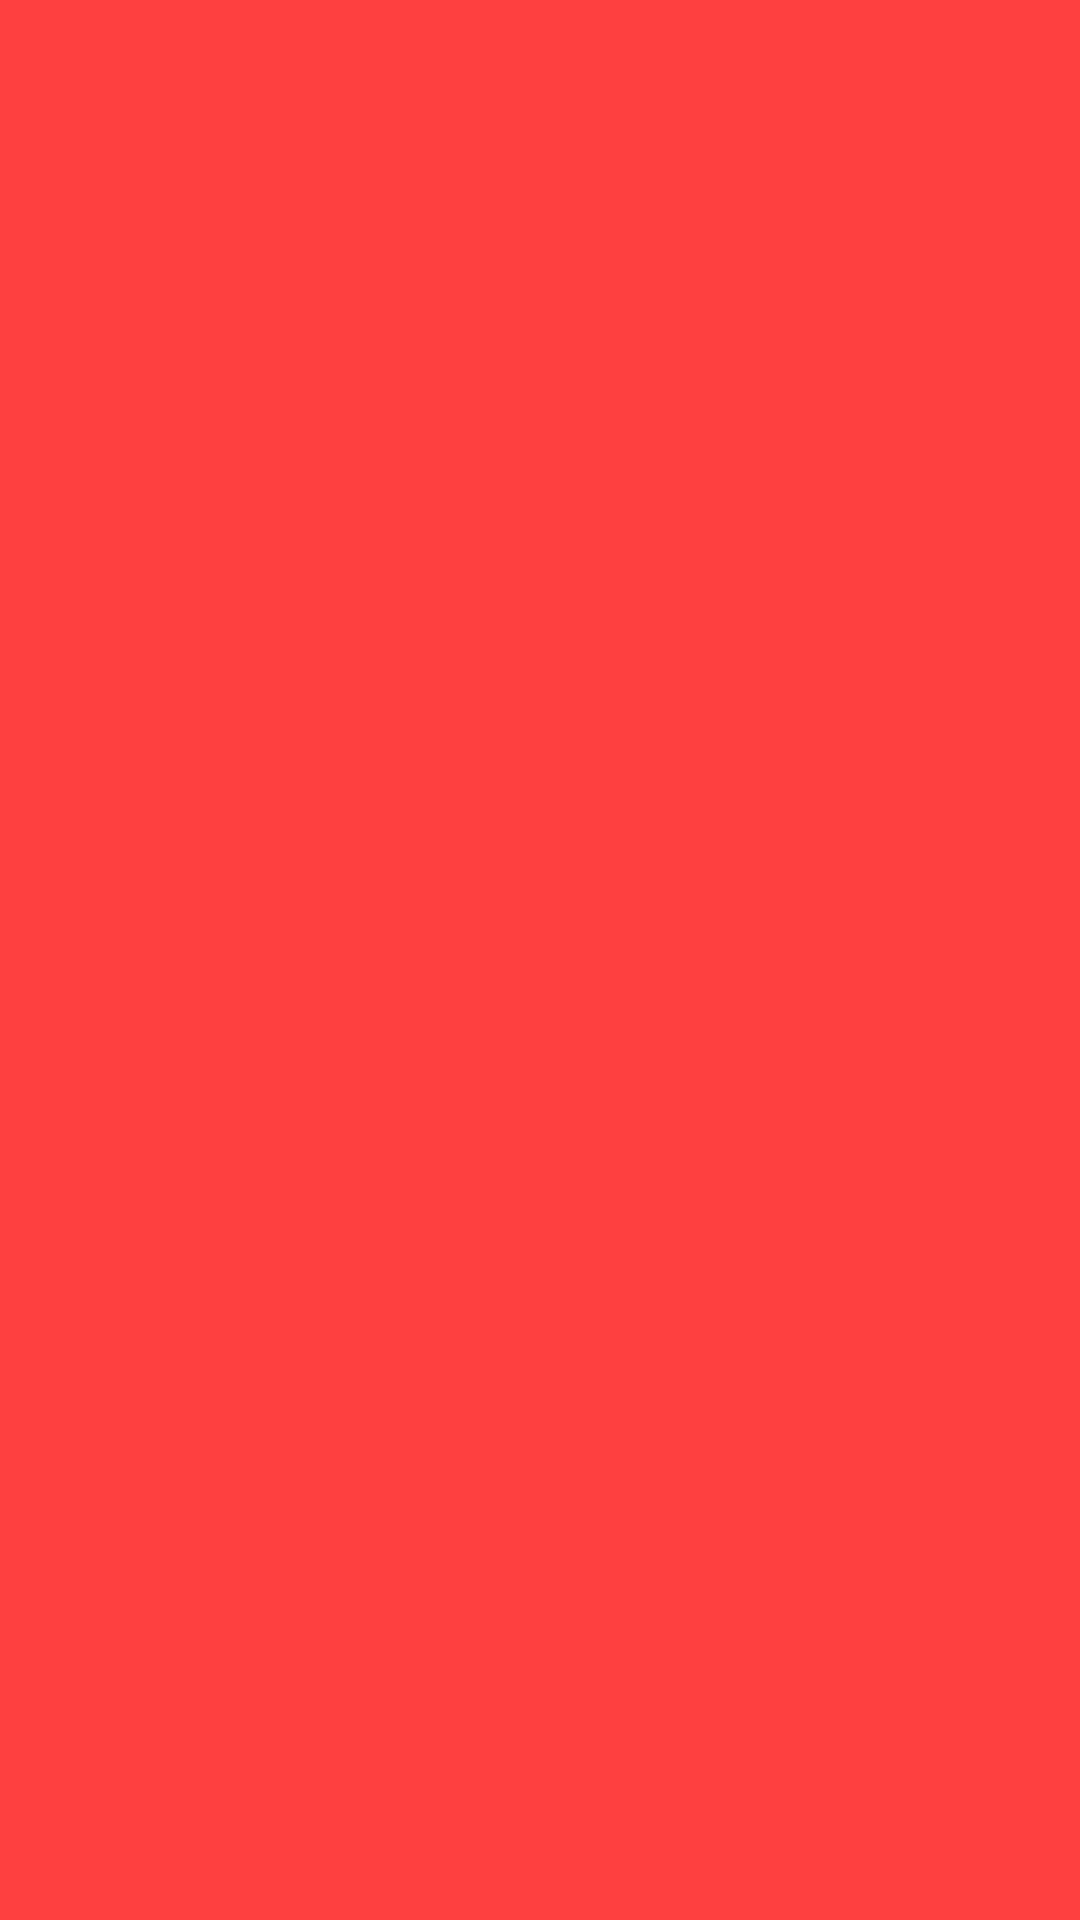 1080x1920 Coral Red Solid Color Background